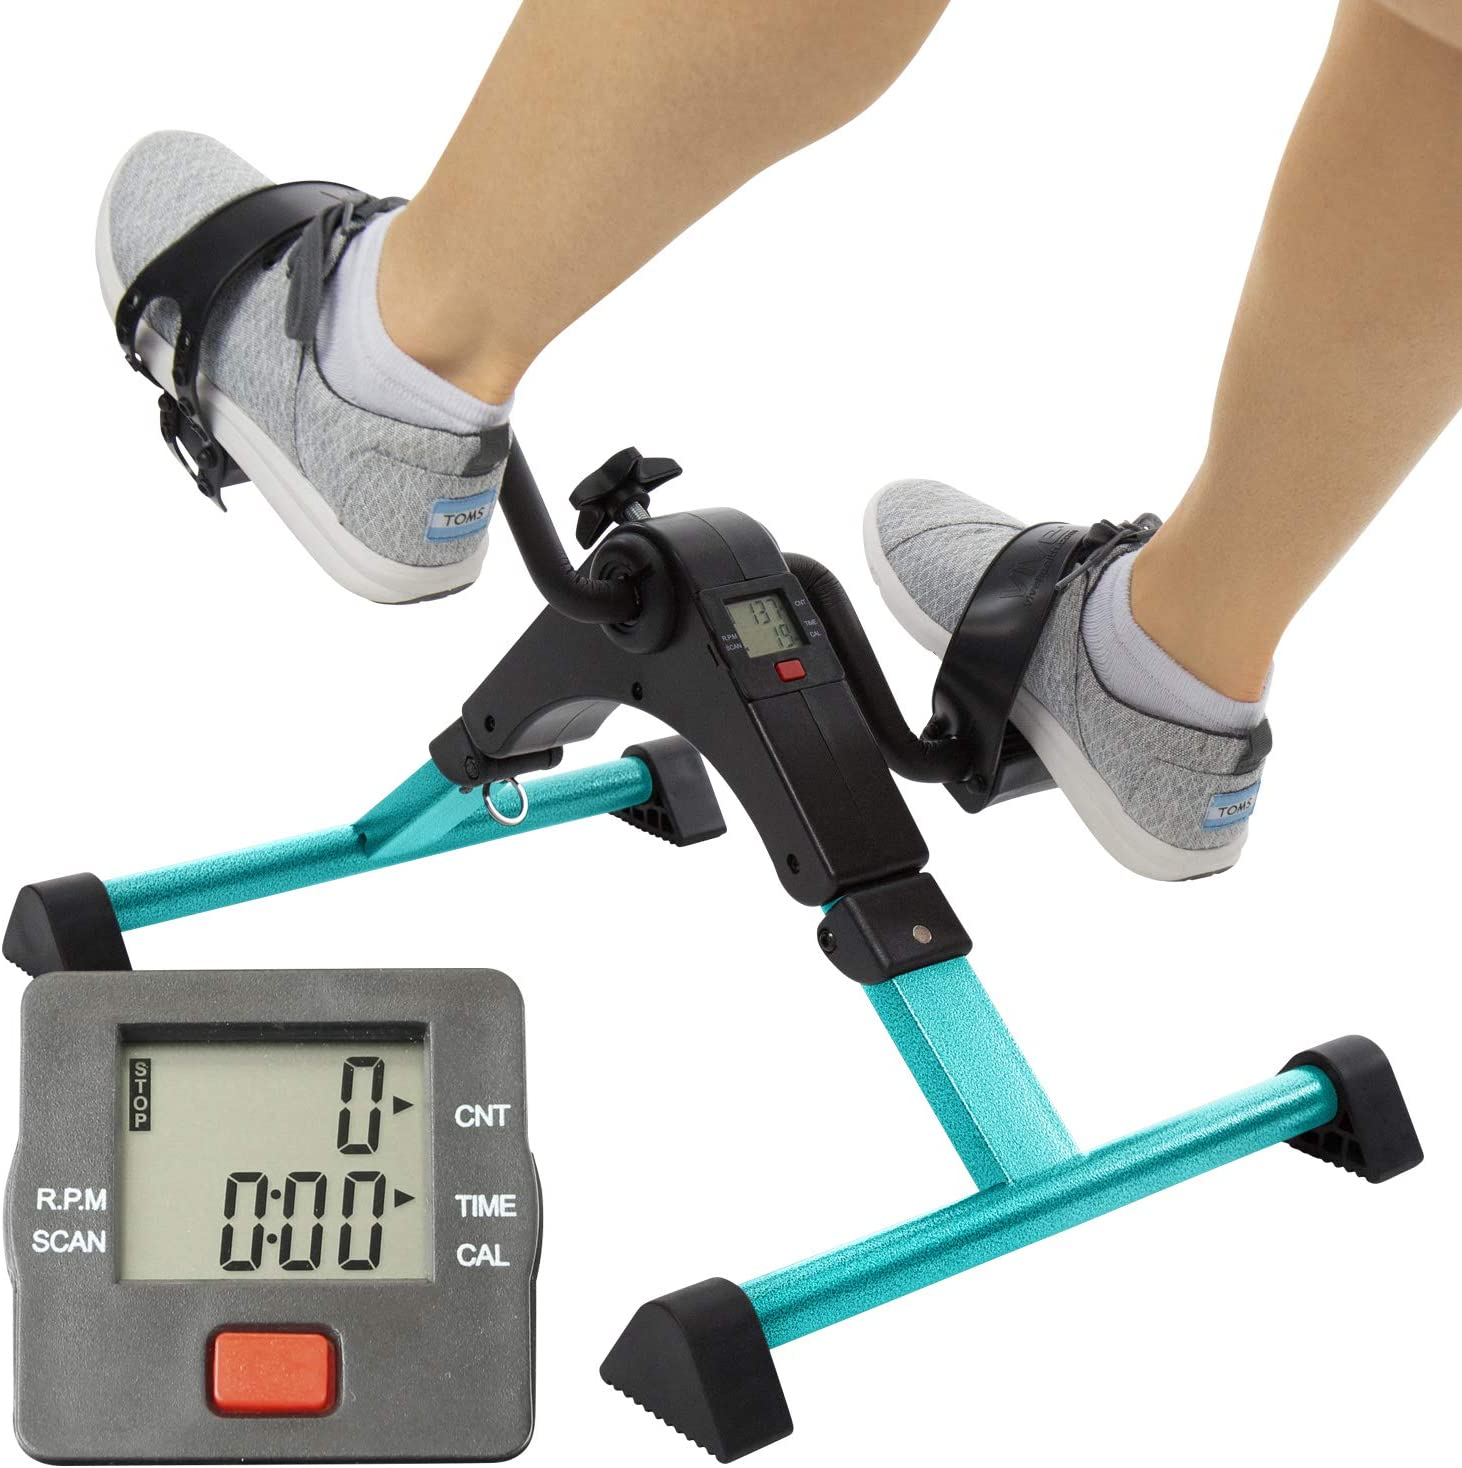 Portable Pedal Exerciser by Vive